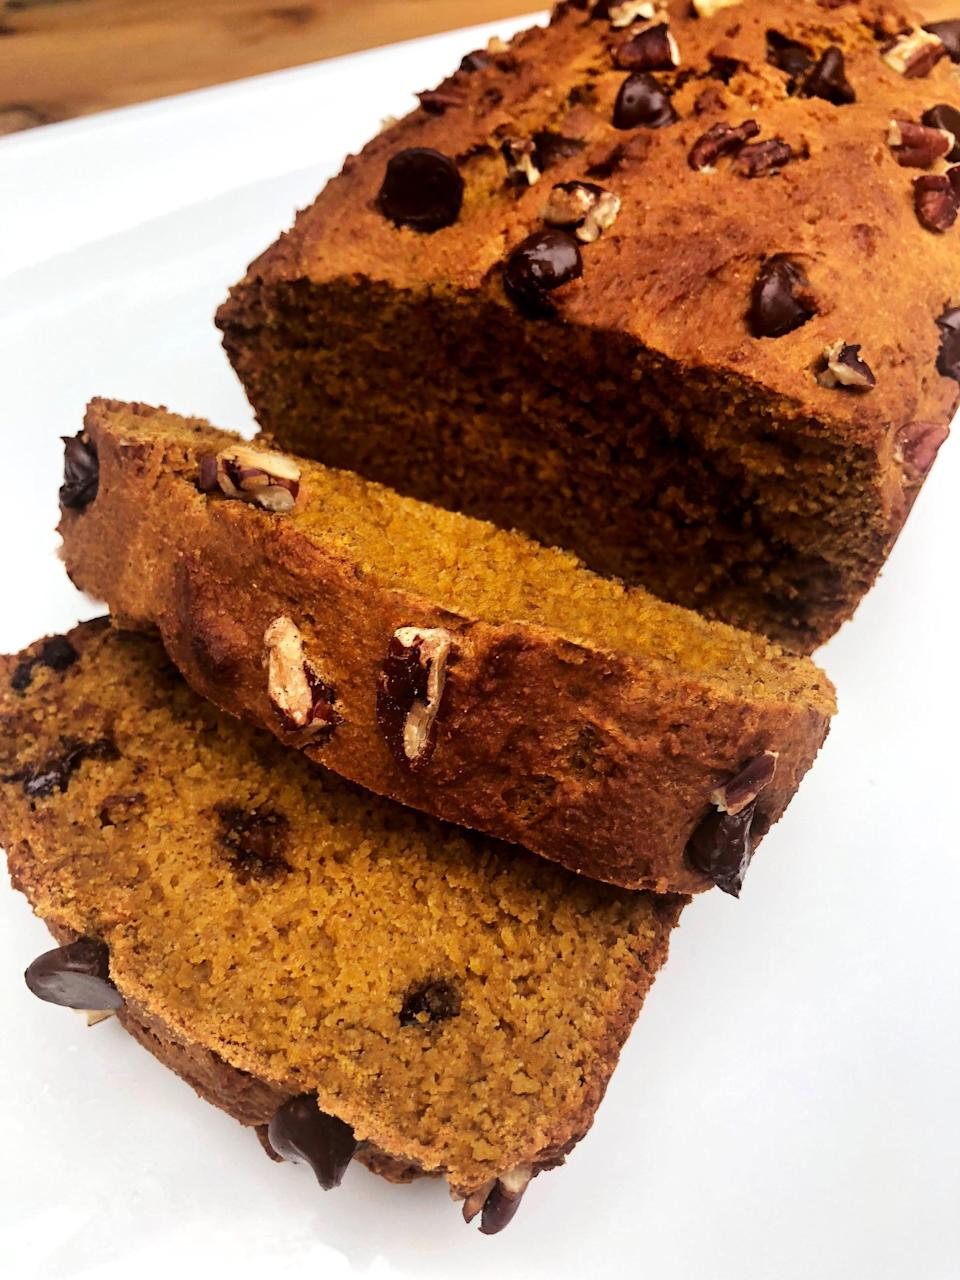 """<p>This easy pumpkin bread recipe has half the sugar and over twice the protein of a typical recipe, offering 9.2 grams of protein per moist and delicious slice.</p> <p><strong>Get the recipe:</strong> <a href=""""https://www.popsugar.com/fitness/Protein-Pumpkin-Bread-Recipe-45269886"""" class=""""link rapid-noclick-resp"""" rel=""""nofollow noopener"""" target=""""_blank"""" data-ylk=""""slk:vegan chocolate-chip pumpkin bread"""">vegan chocolate-chip pumpkin bread</a></p>"""